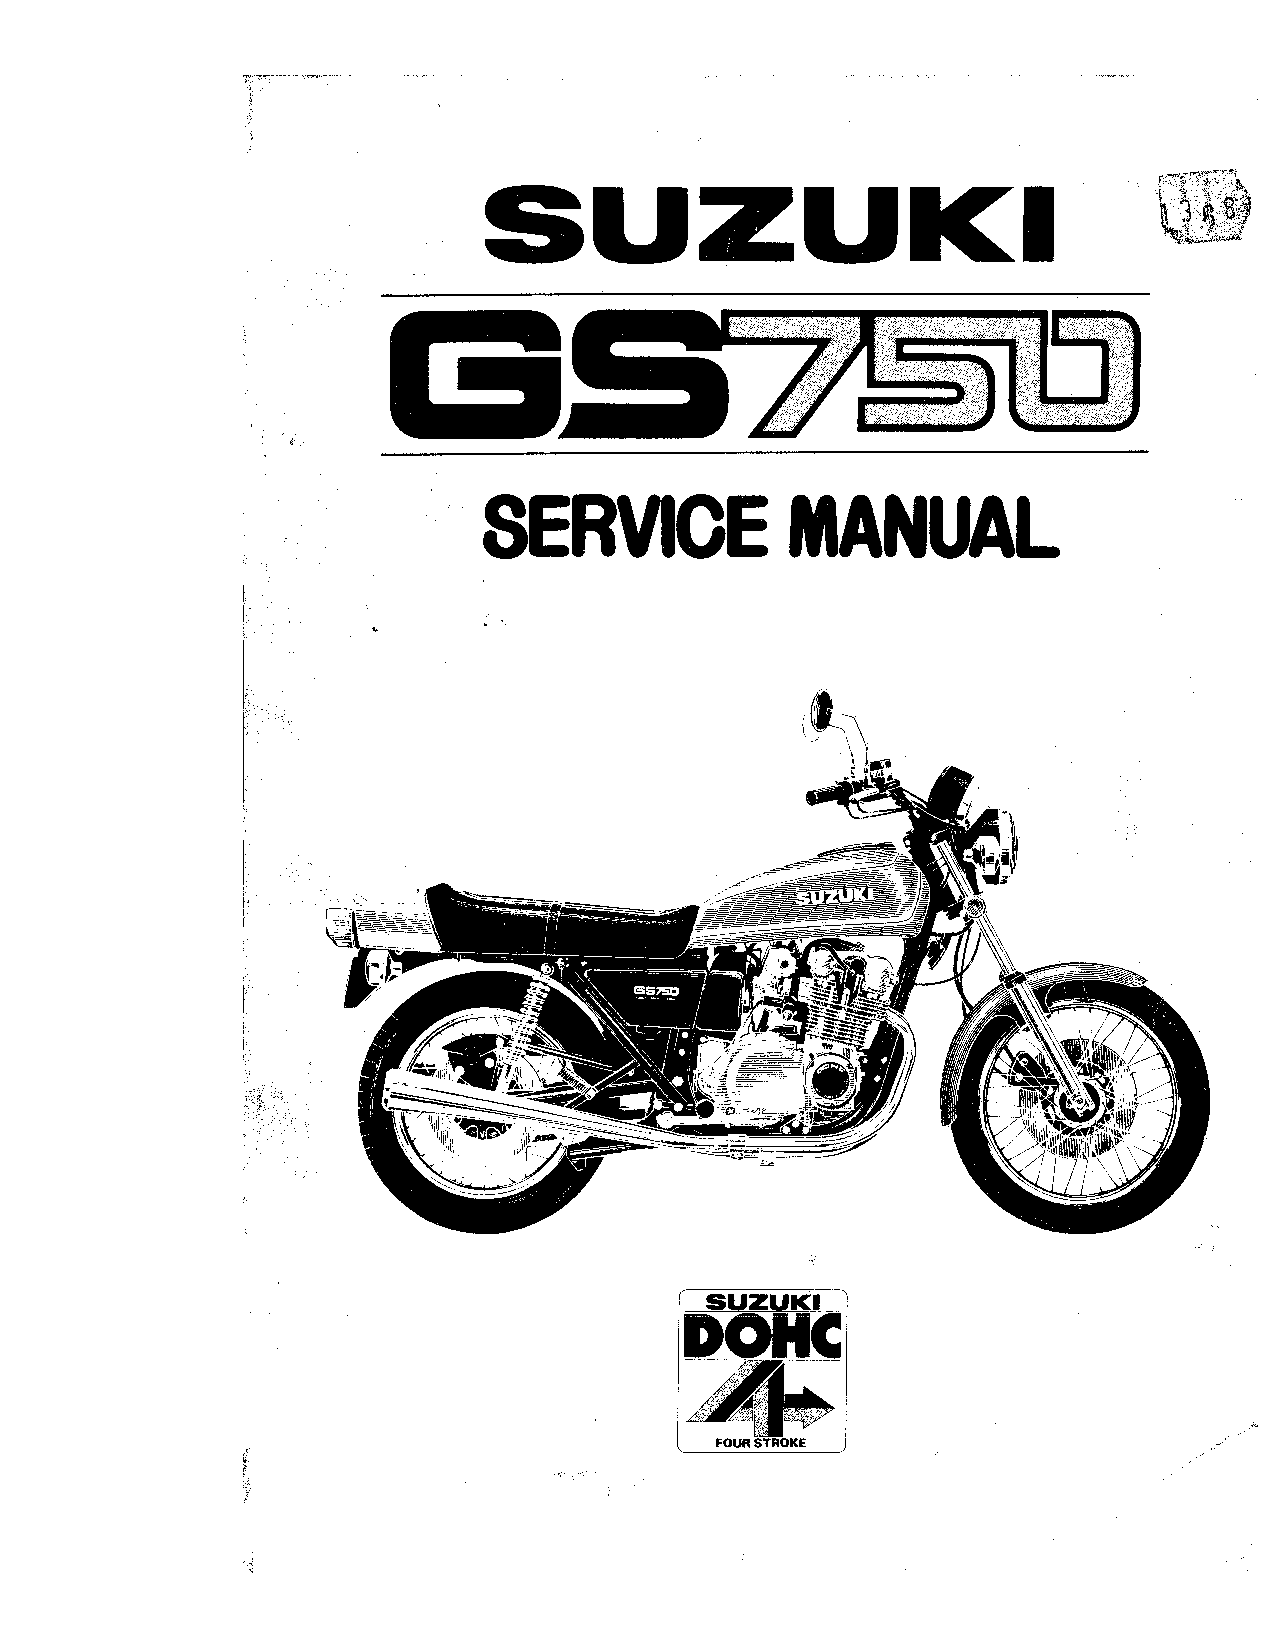 Suzuki GS750 Service Manual